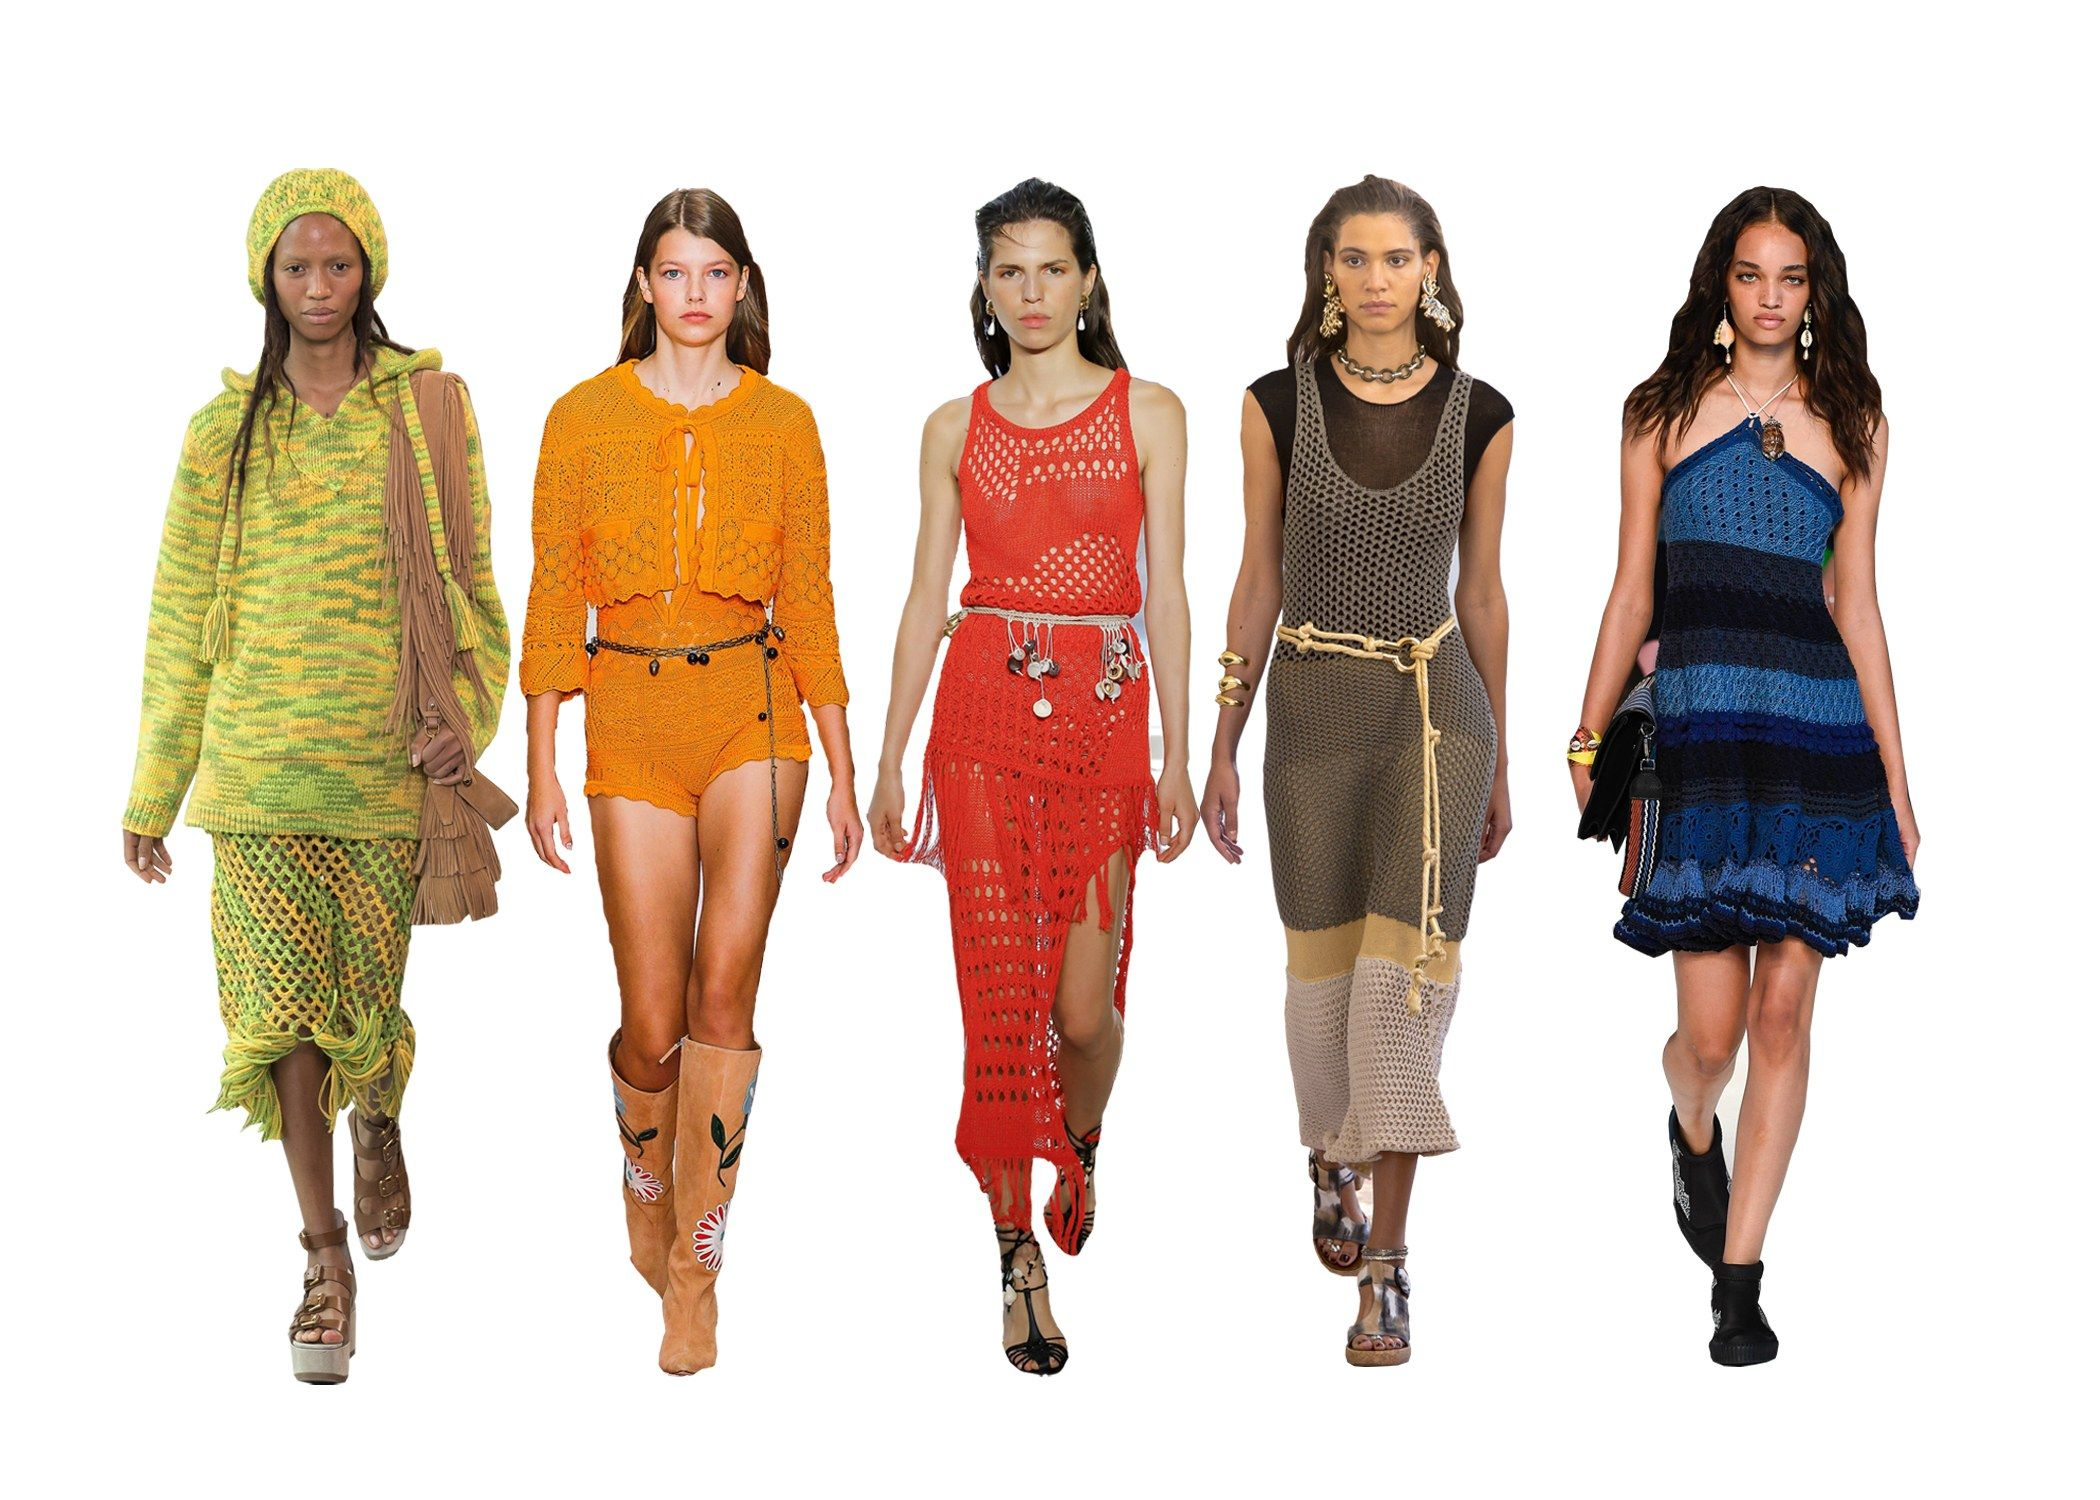 The 8 Biggest Spring 8 Fashion Trends  Fashion trends